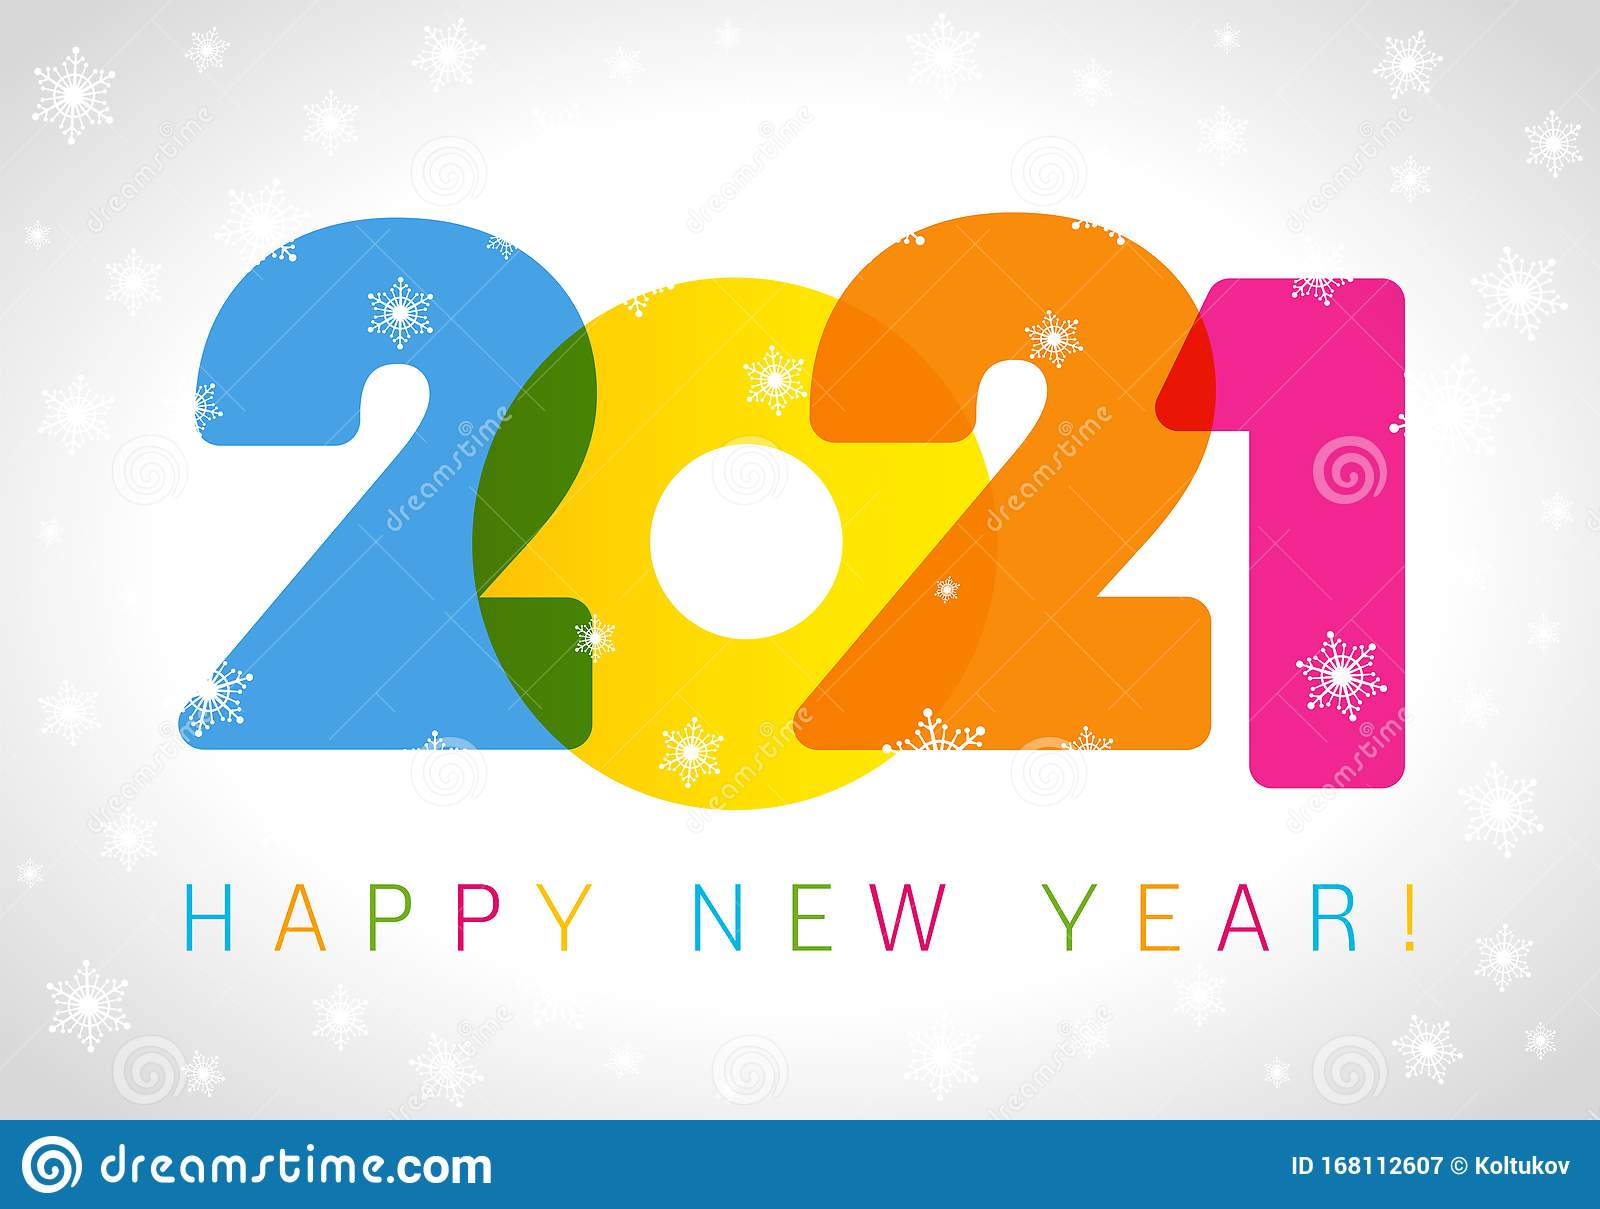 A Happy New Year 2021 logo stock vector. Illustration of ...